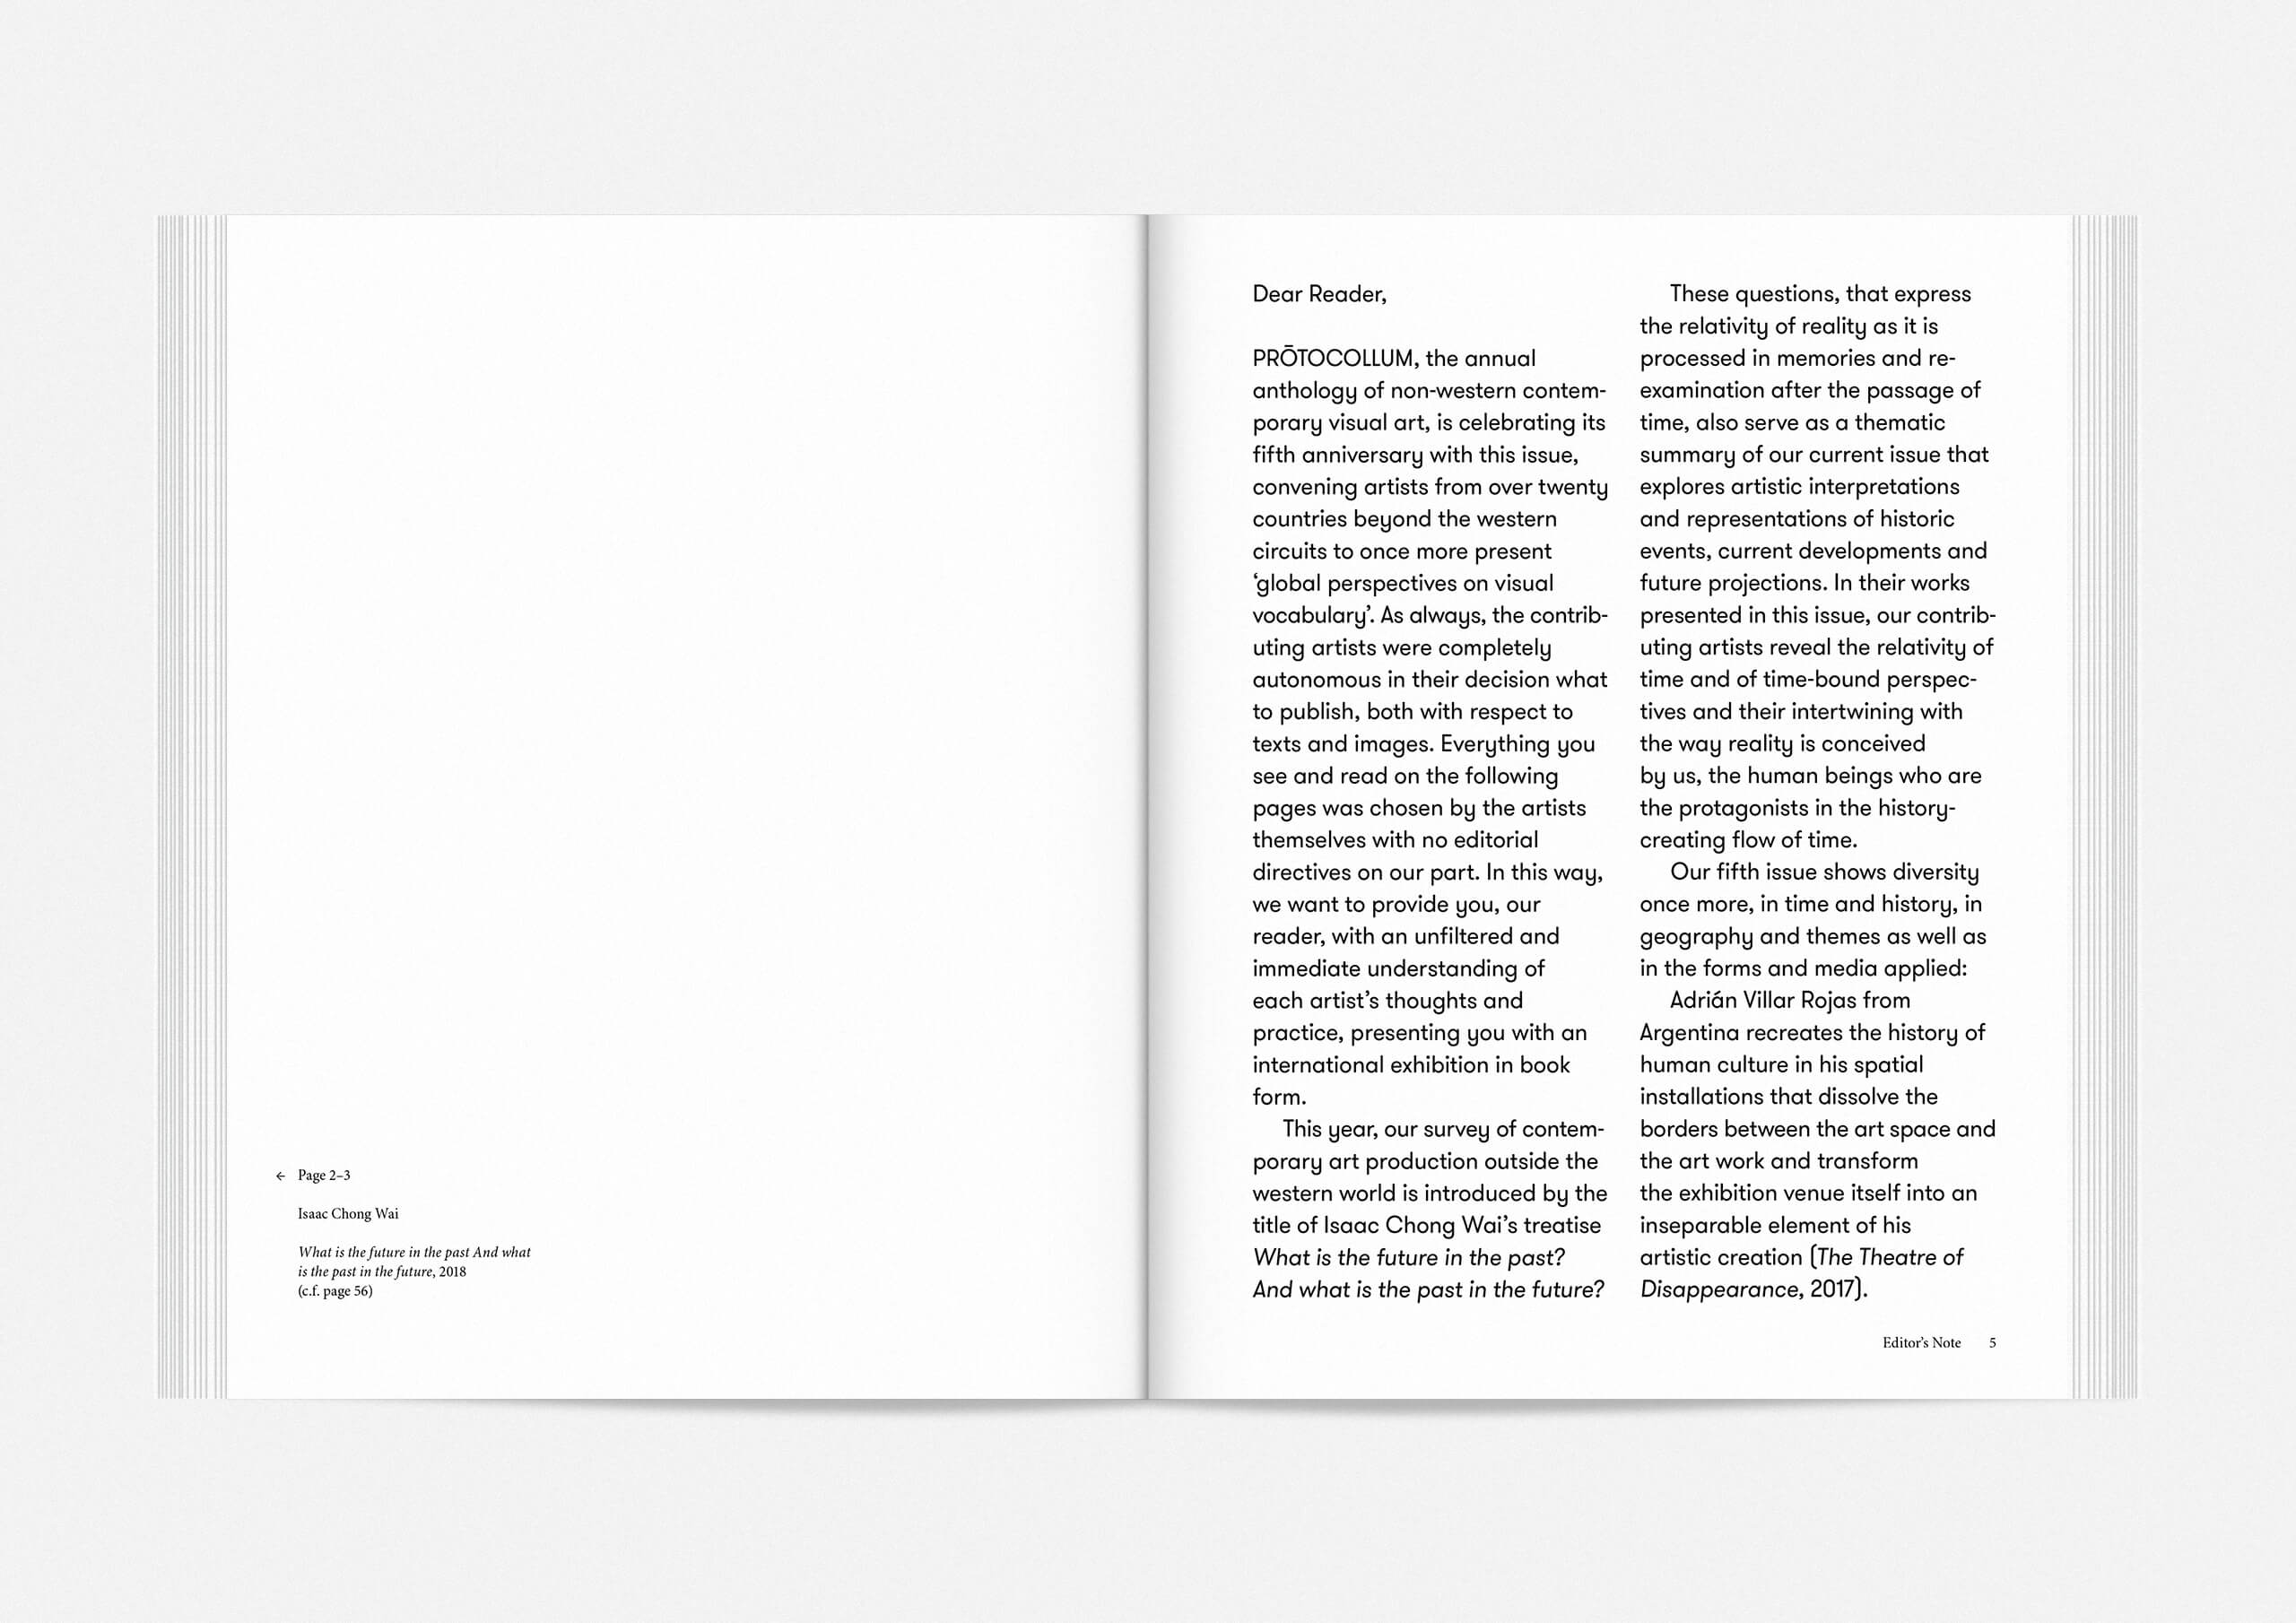 http://www.neuegestaltung.de/media/pages/clients/protocollum-issue-no-05/0eb03acb64-1597415145/protocollum-5-page-0405-ng.jpg